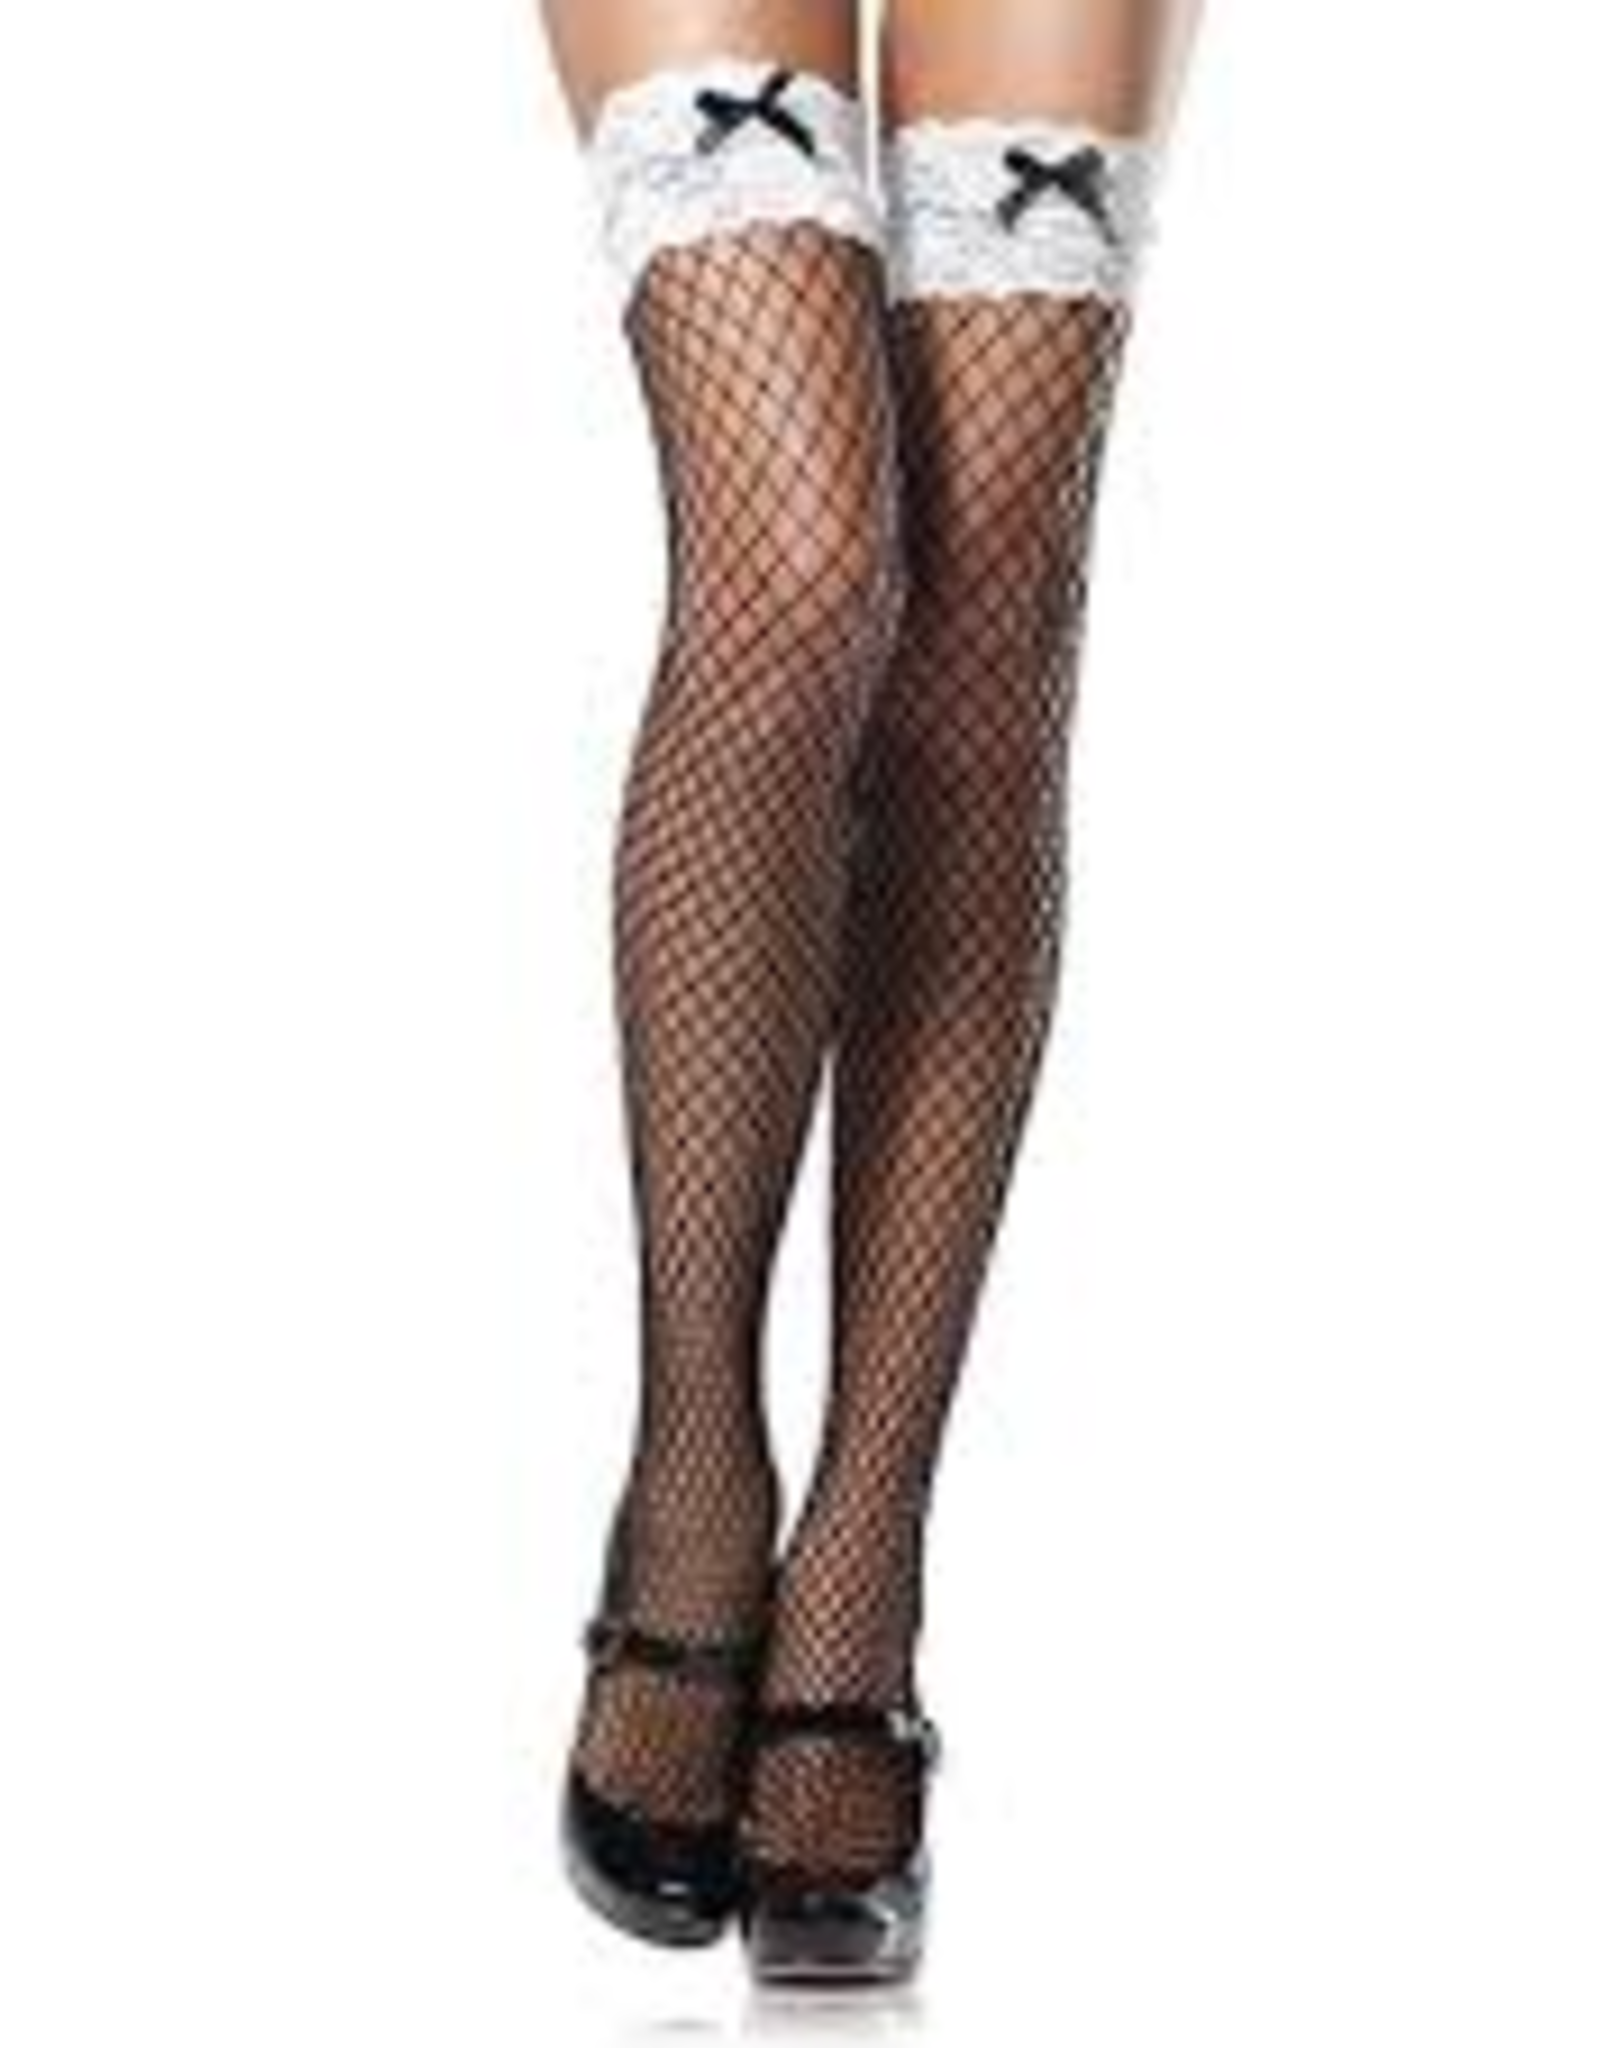 THIGH HIGH-FISHNET,<br />W/LACE TOP & BOW